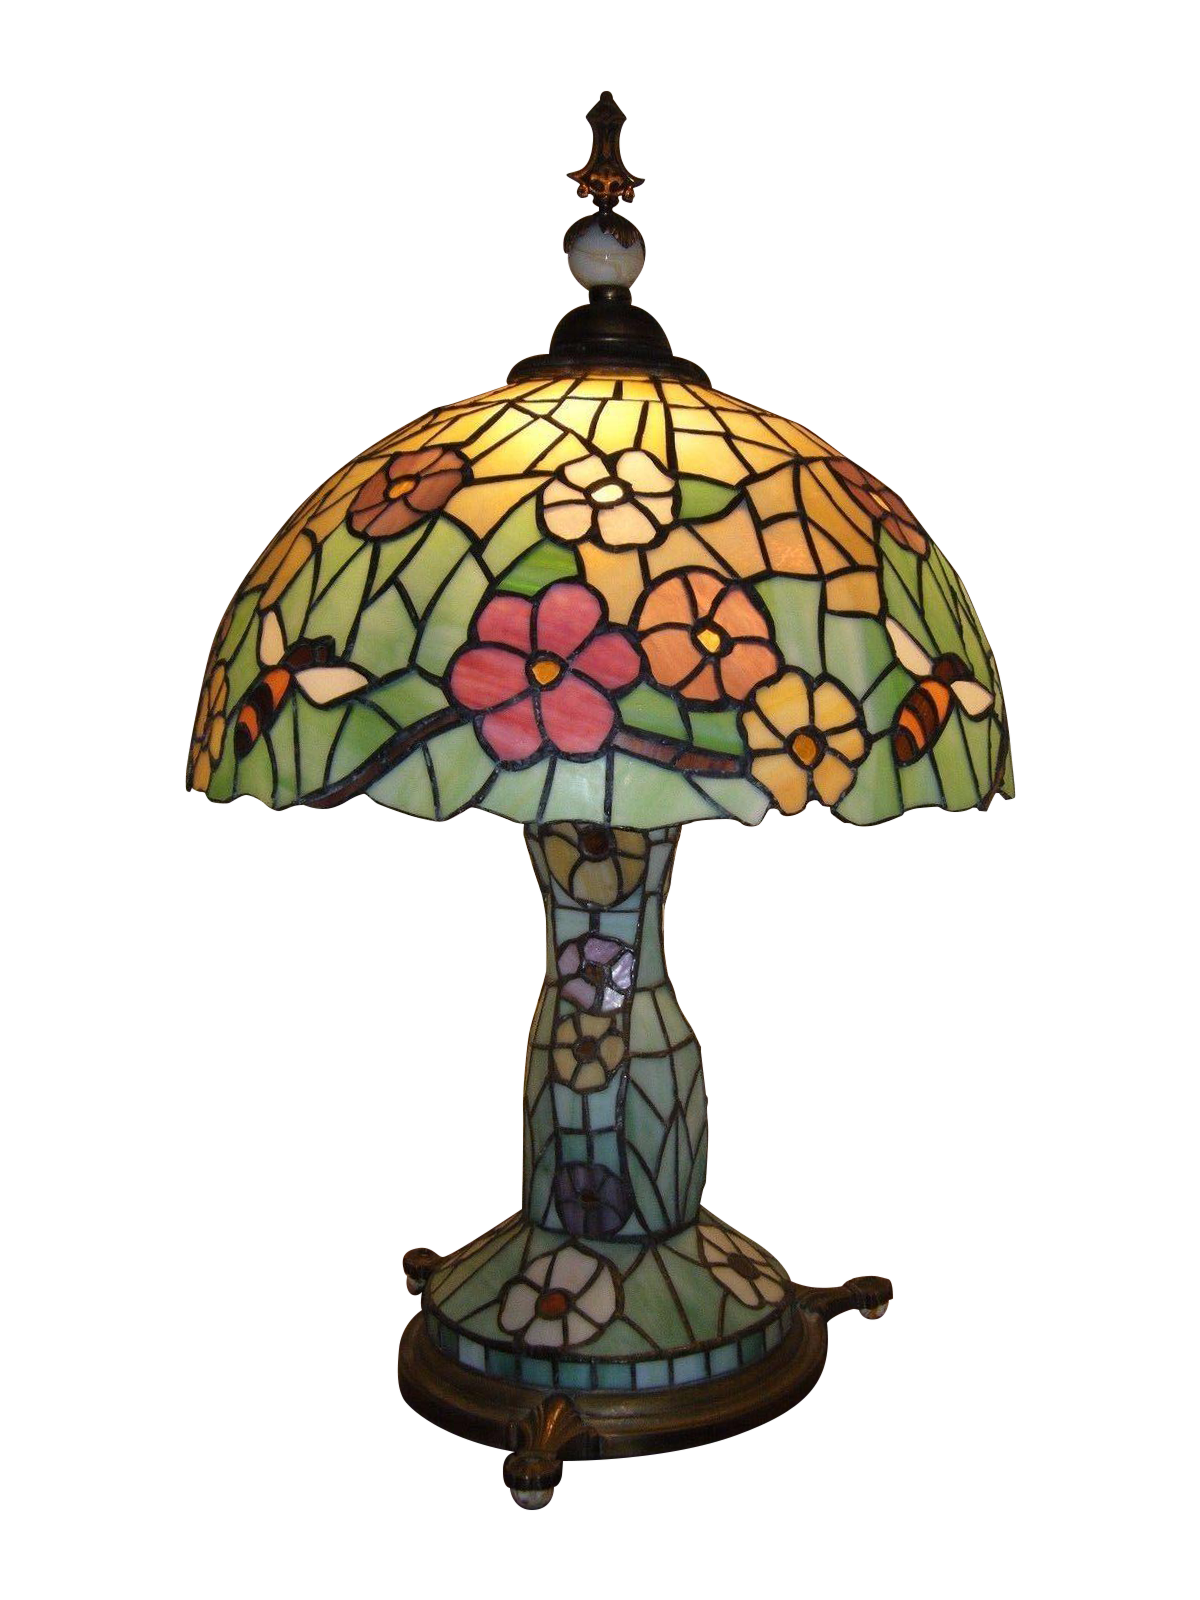 Xl antique chicago mosaic stained glass lamp chairish for Table mosaic xl 6 chaises encastrables